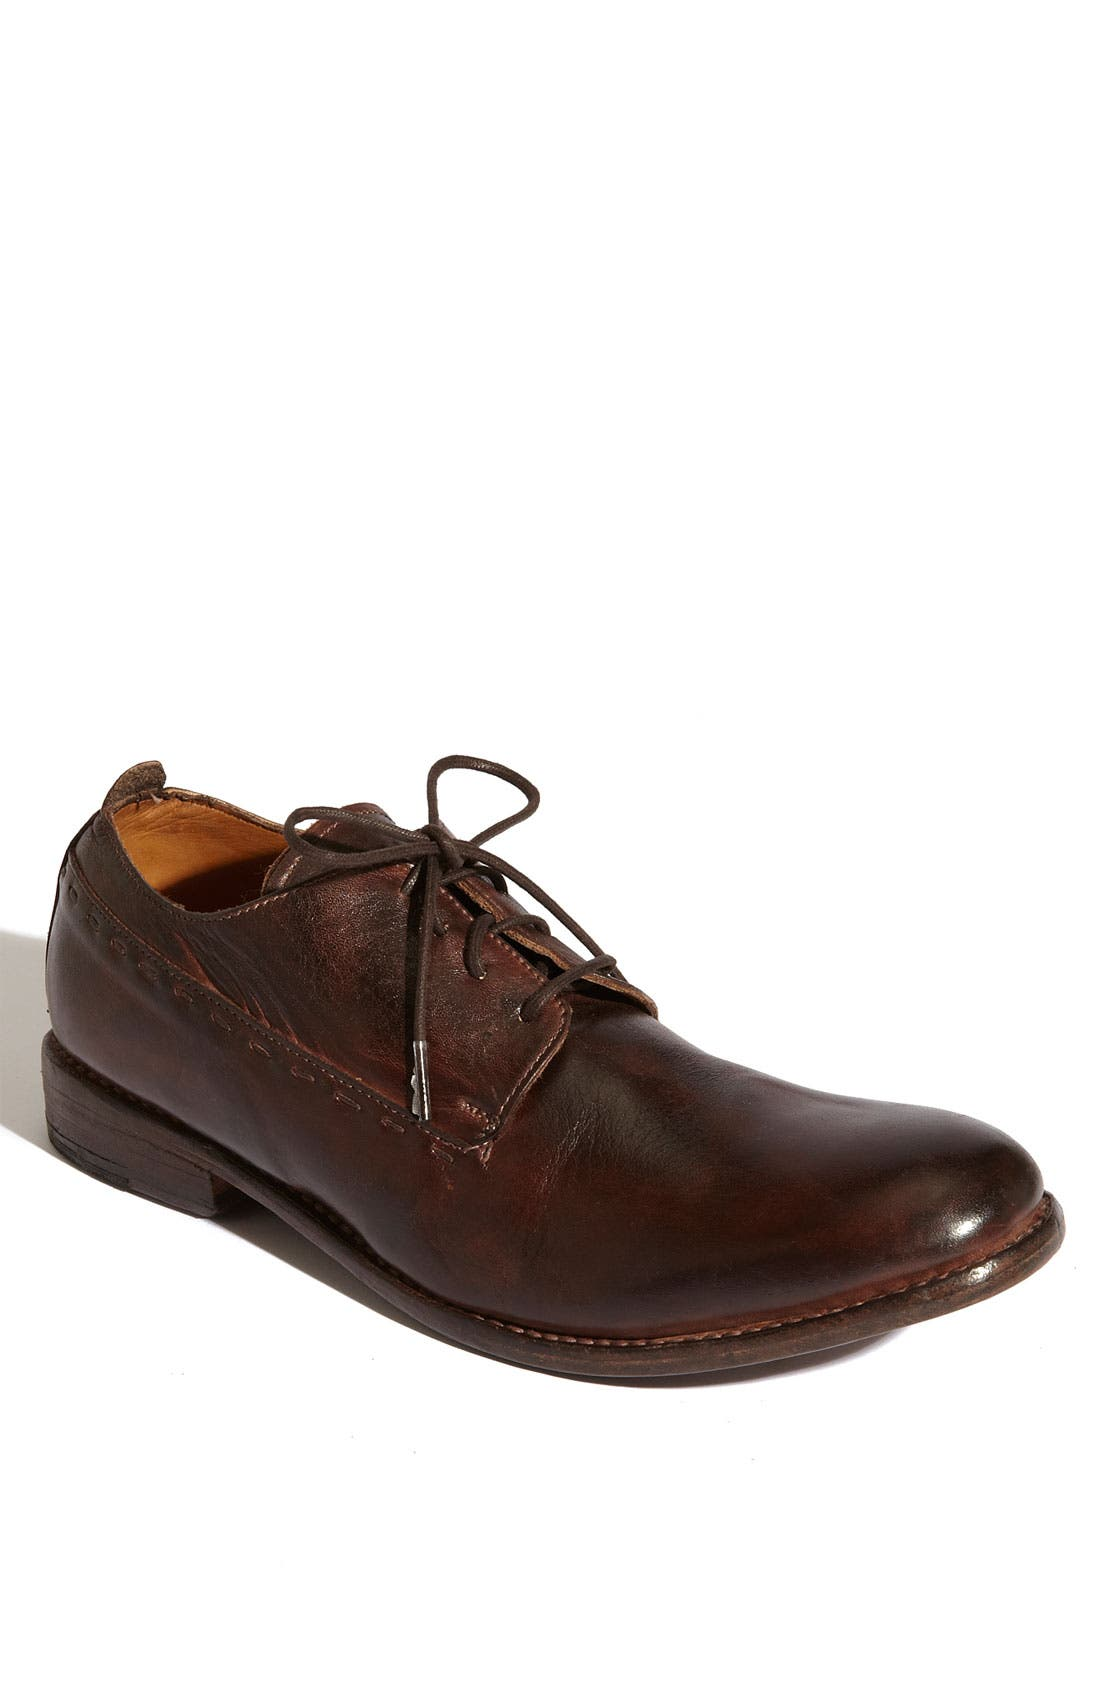 Main Image - Bed Stu 'Ritz' Oxford (Online Only)